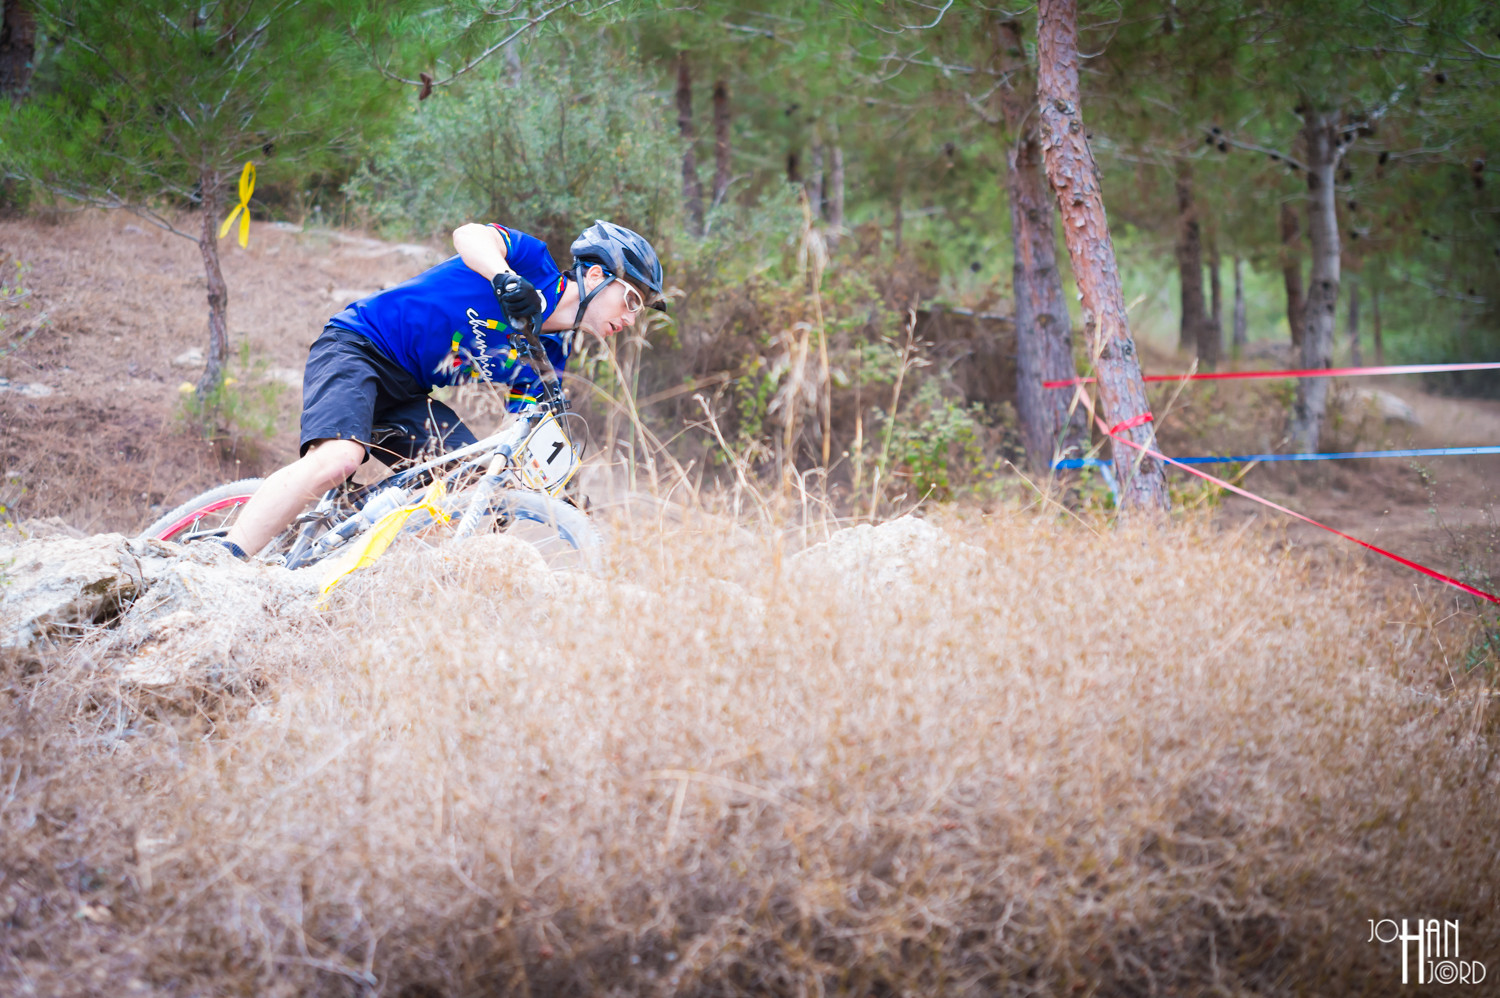 Mini-Enduro Misgav 2013 - iceman2058 - Mountain Biking Pictures - Vital MTB